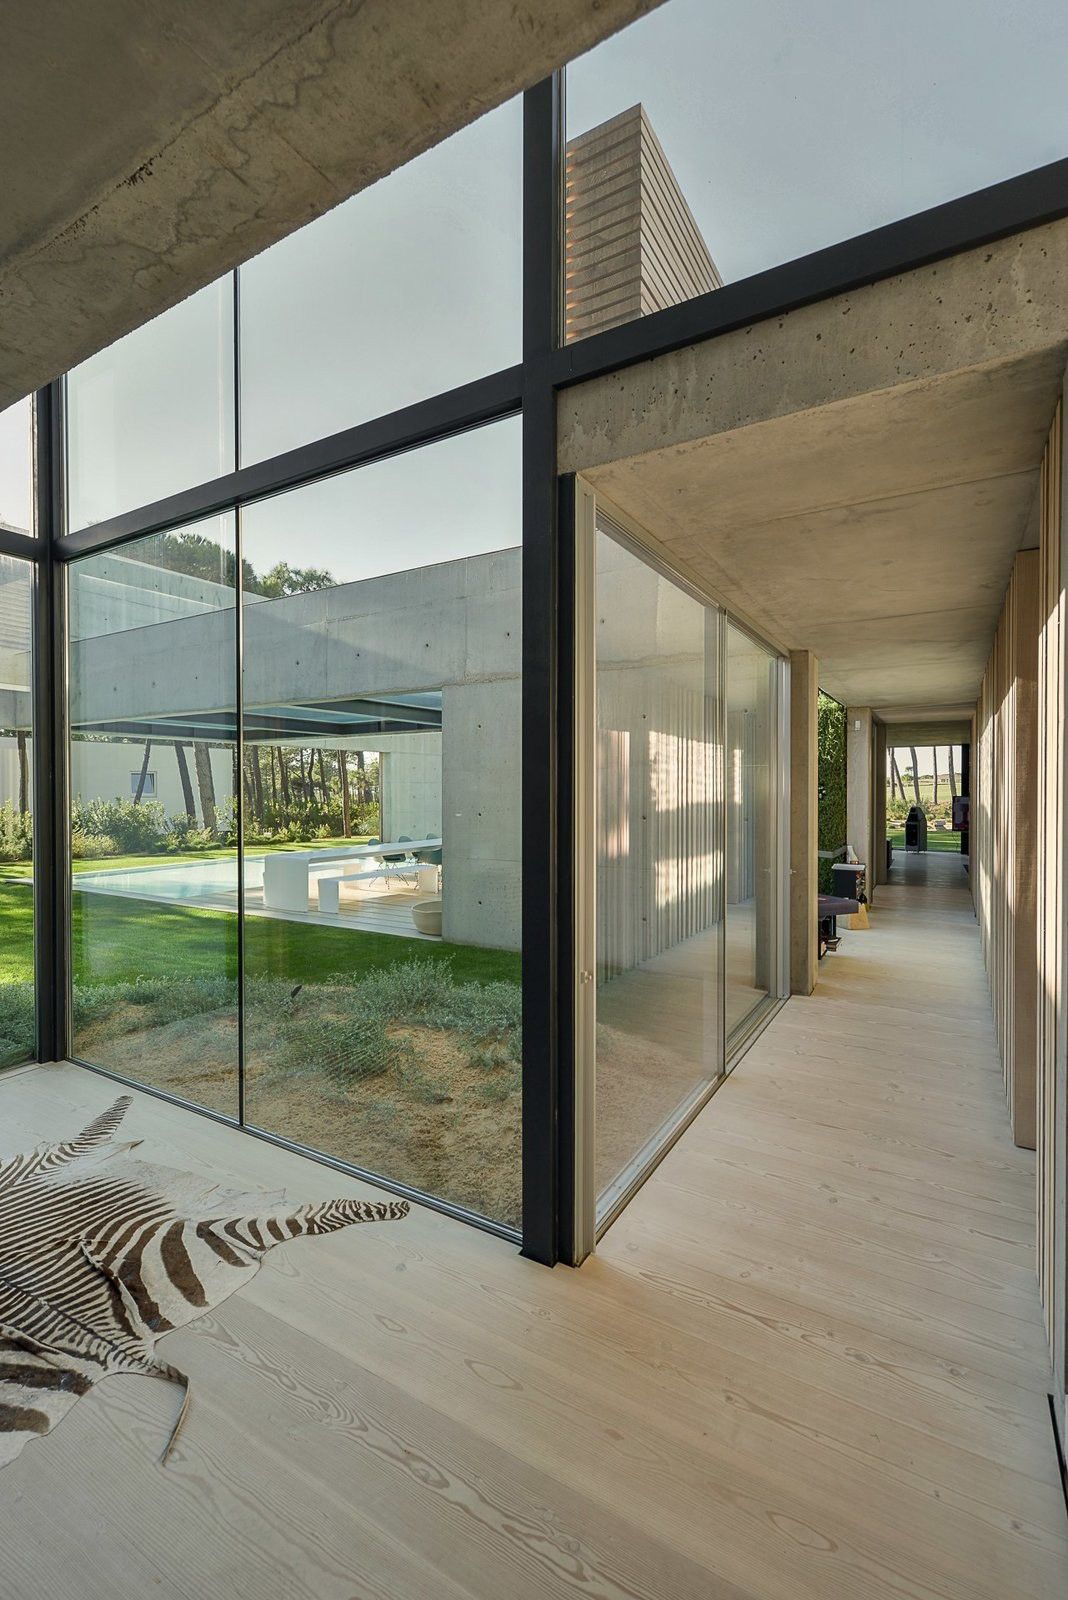 The-Wall-House-on-Portuguese-Riviera-by-Guedes-Cruz-Arquitectos-Yellowtrace-16.jpg